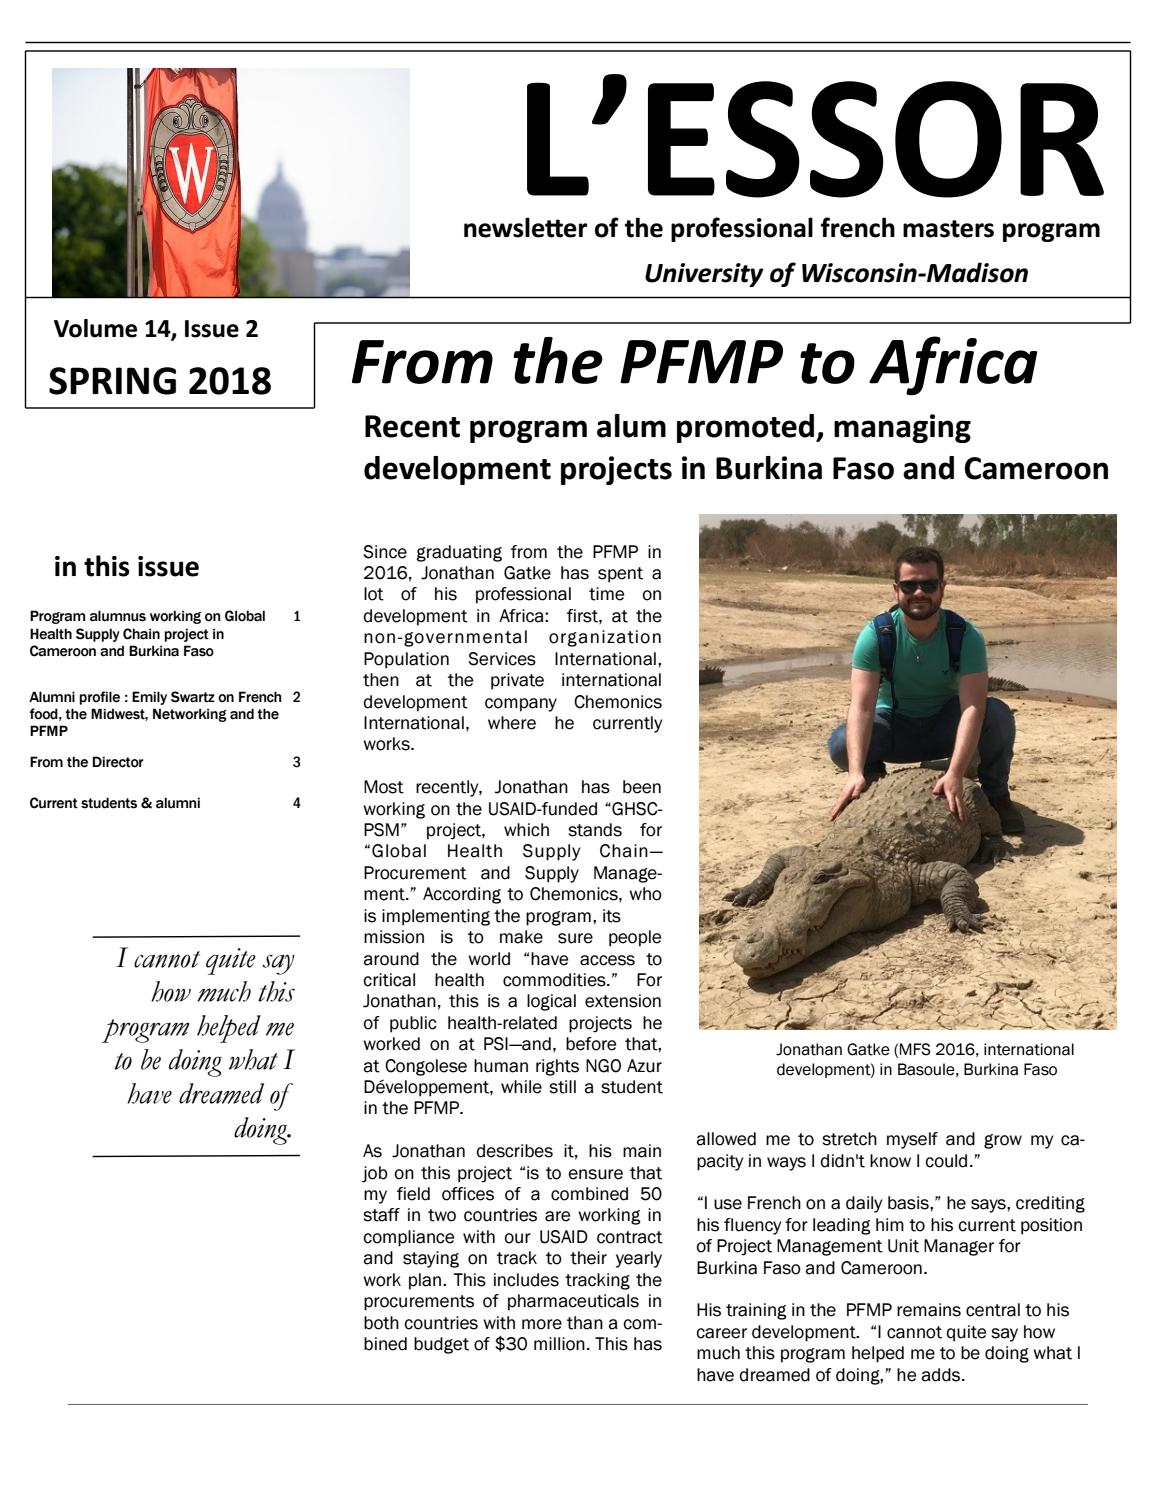 Lessor newsletter of the professional french masters program spring lessor newsletter of the professional french masters program spring 2018 by uw madison professional french masters program issuu solutioingenieria Image collections